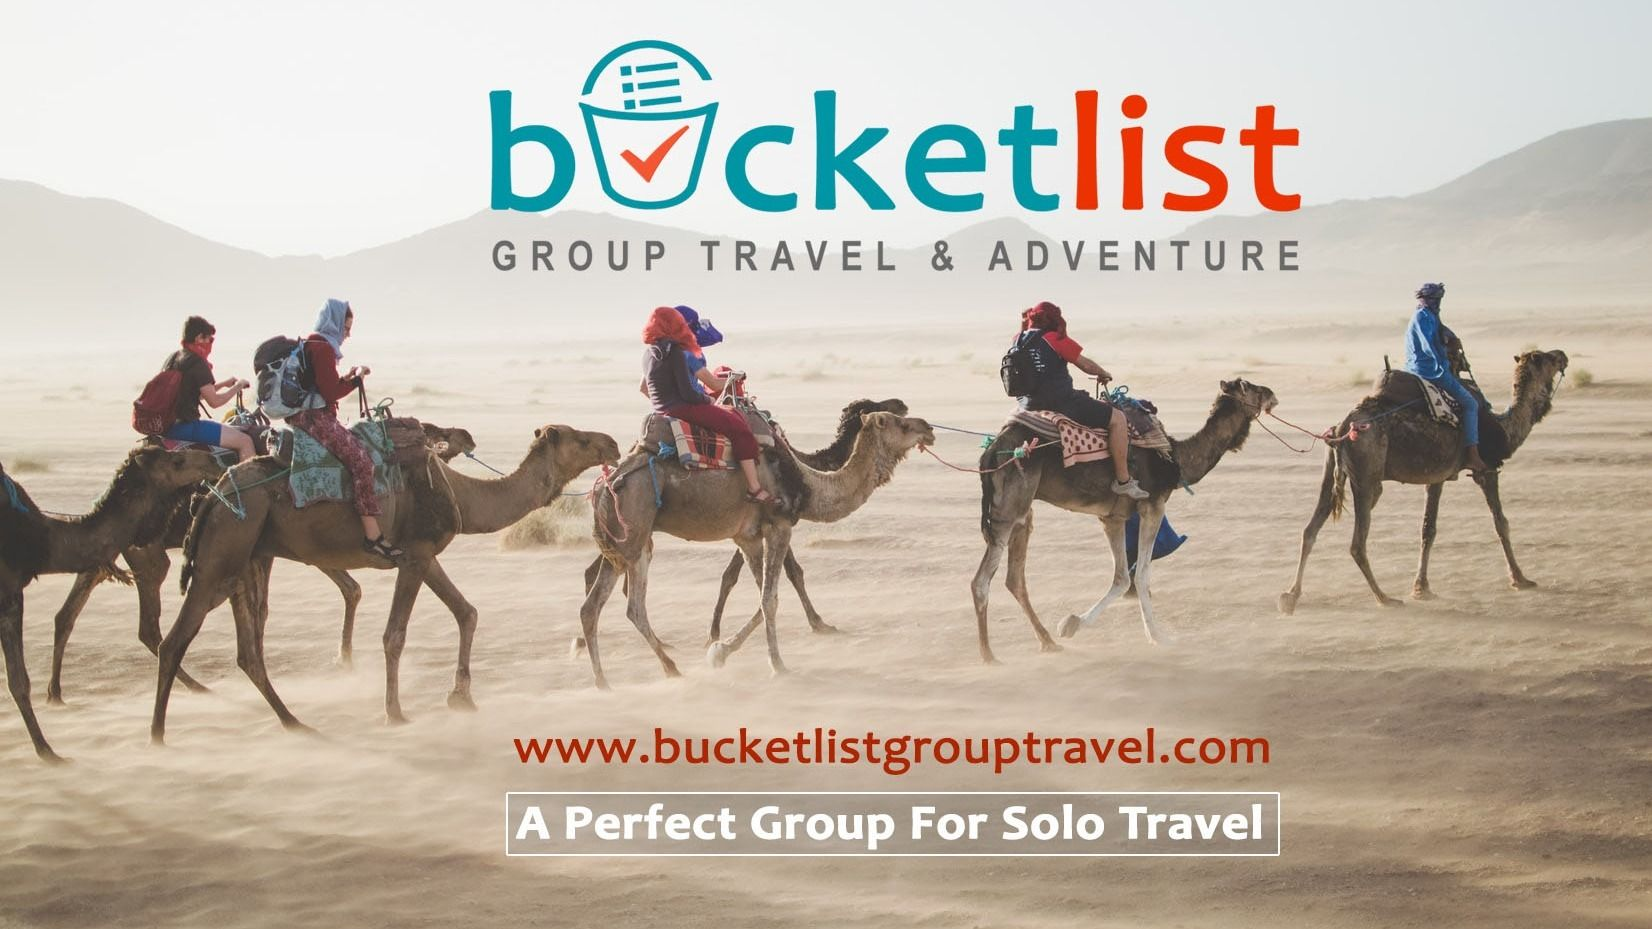 Houston - Bucket List Group Travel